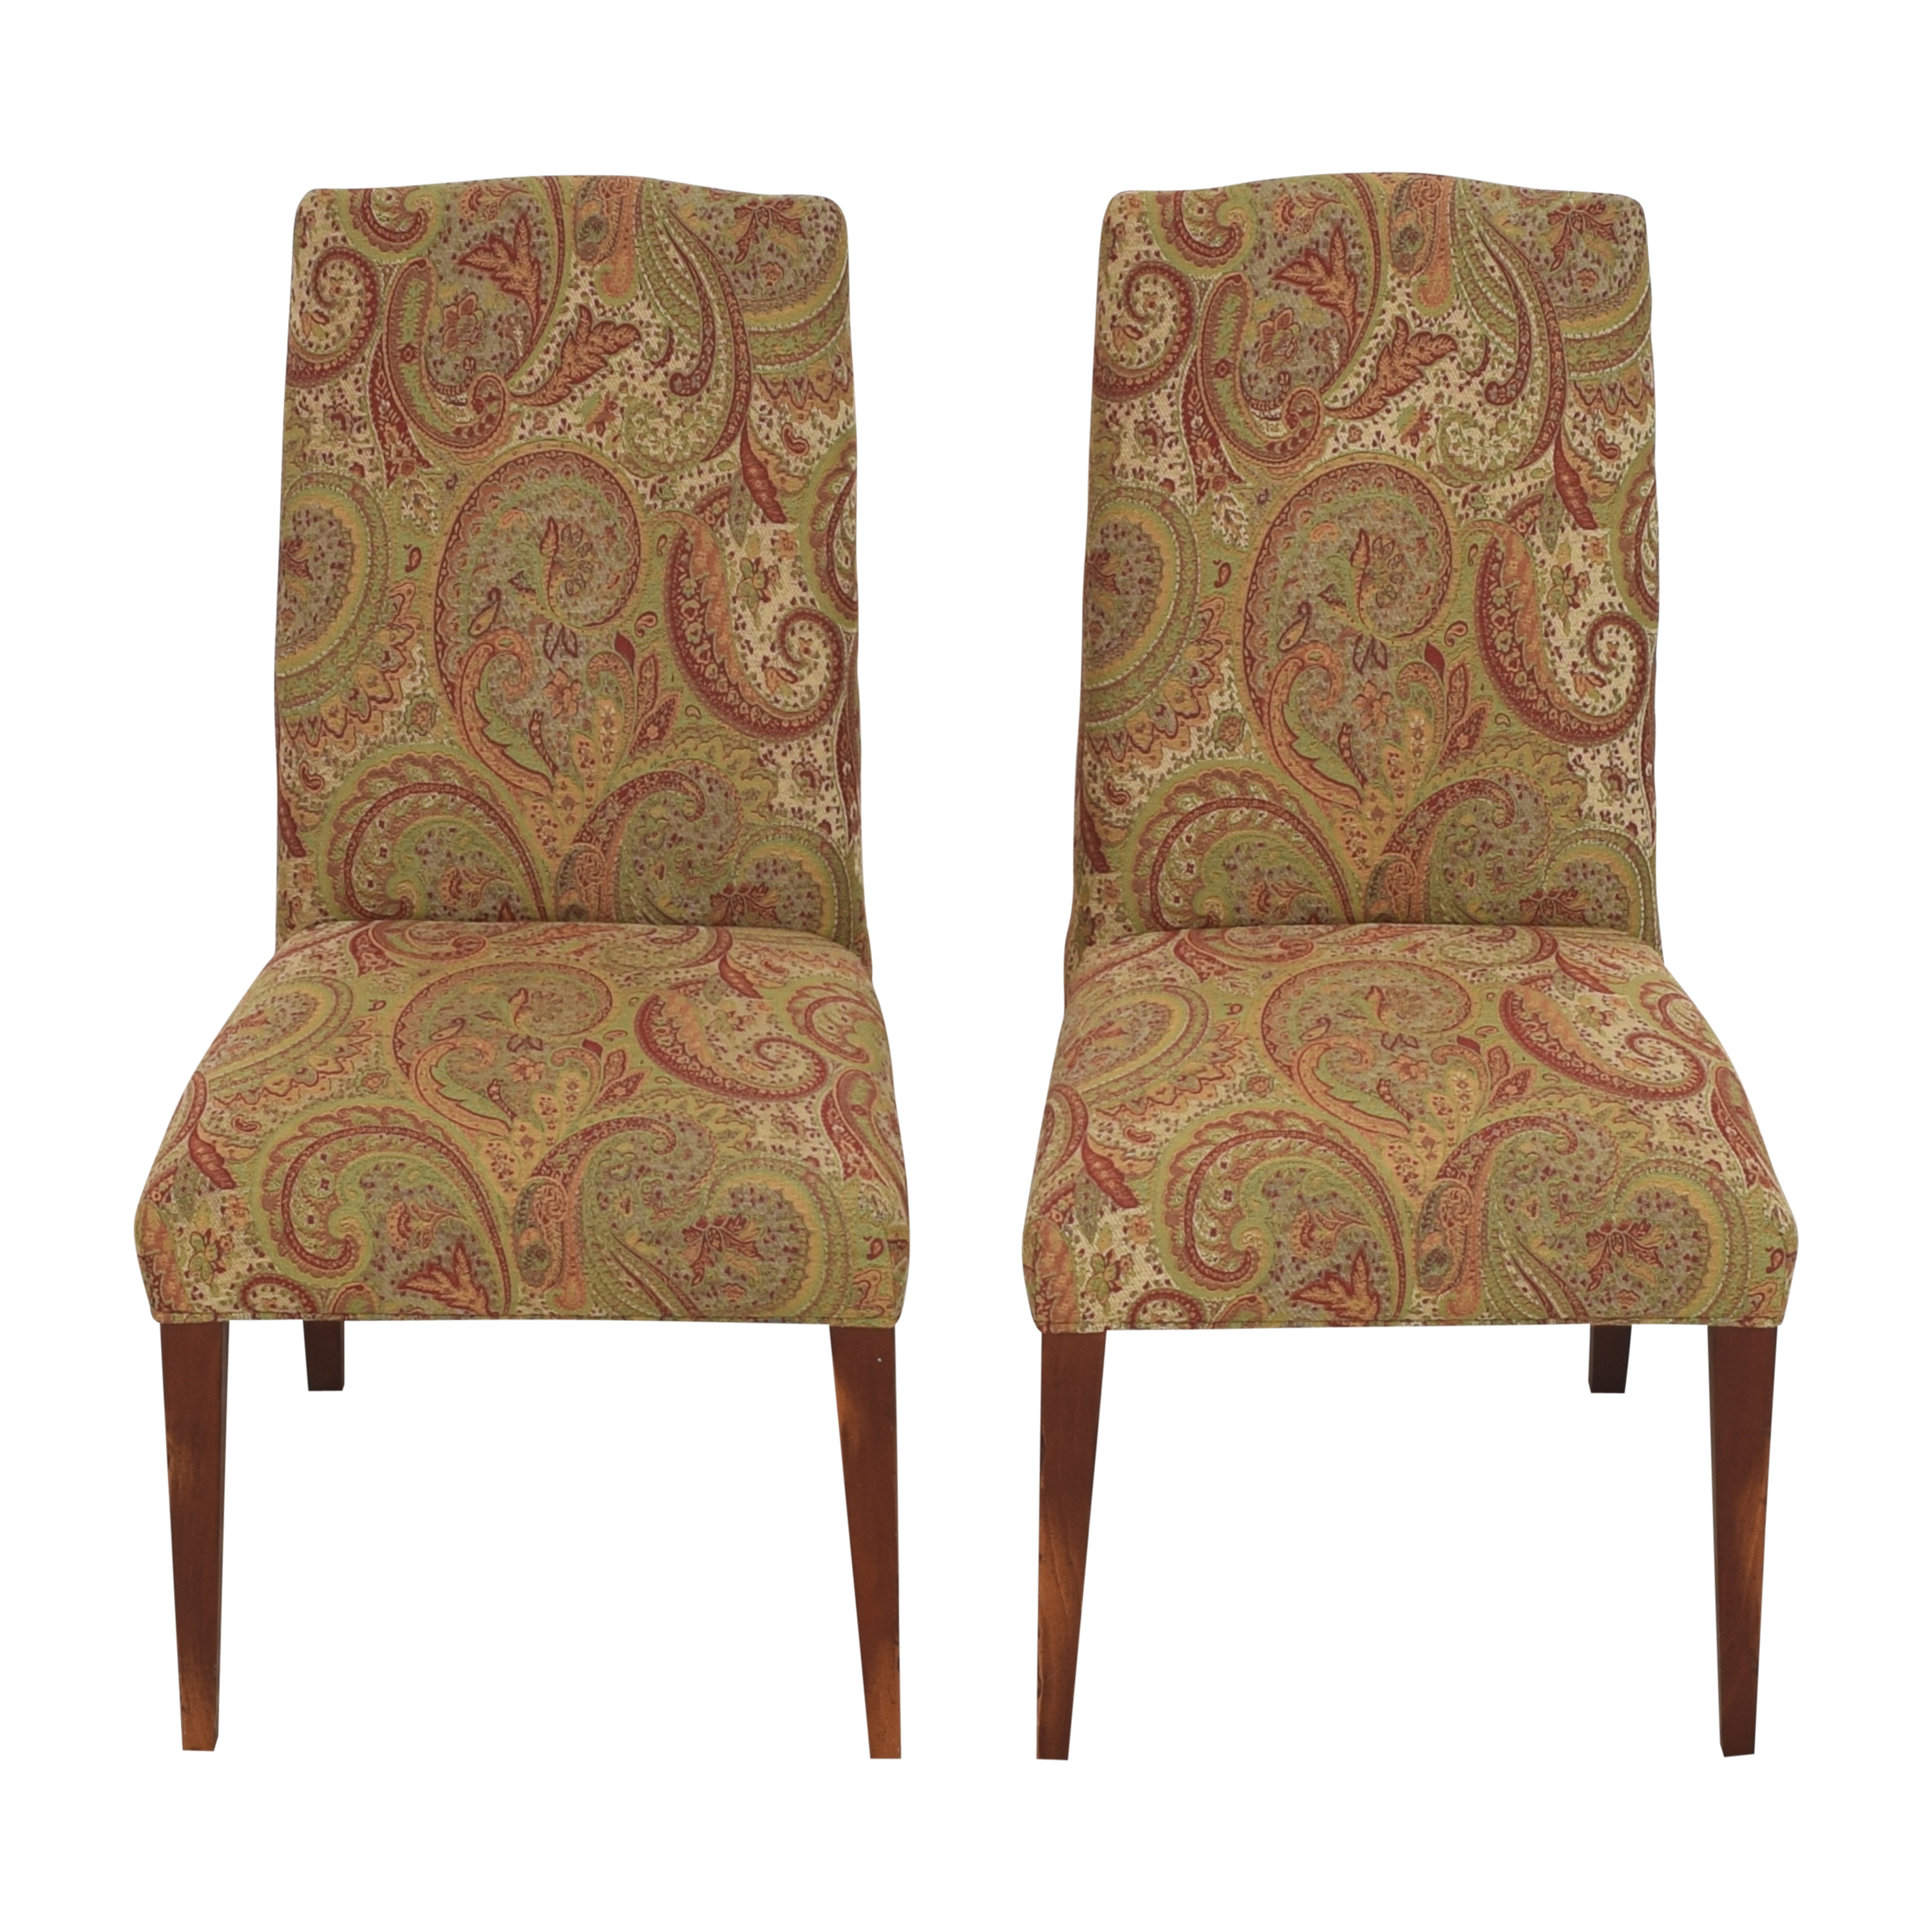 Saloom Saloom Model 61 Upholstered Dining Side Chairs price